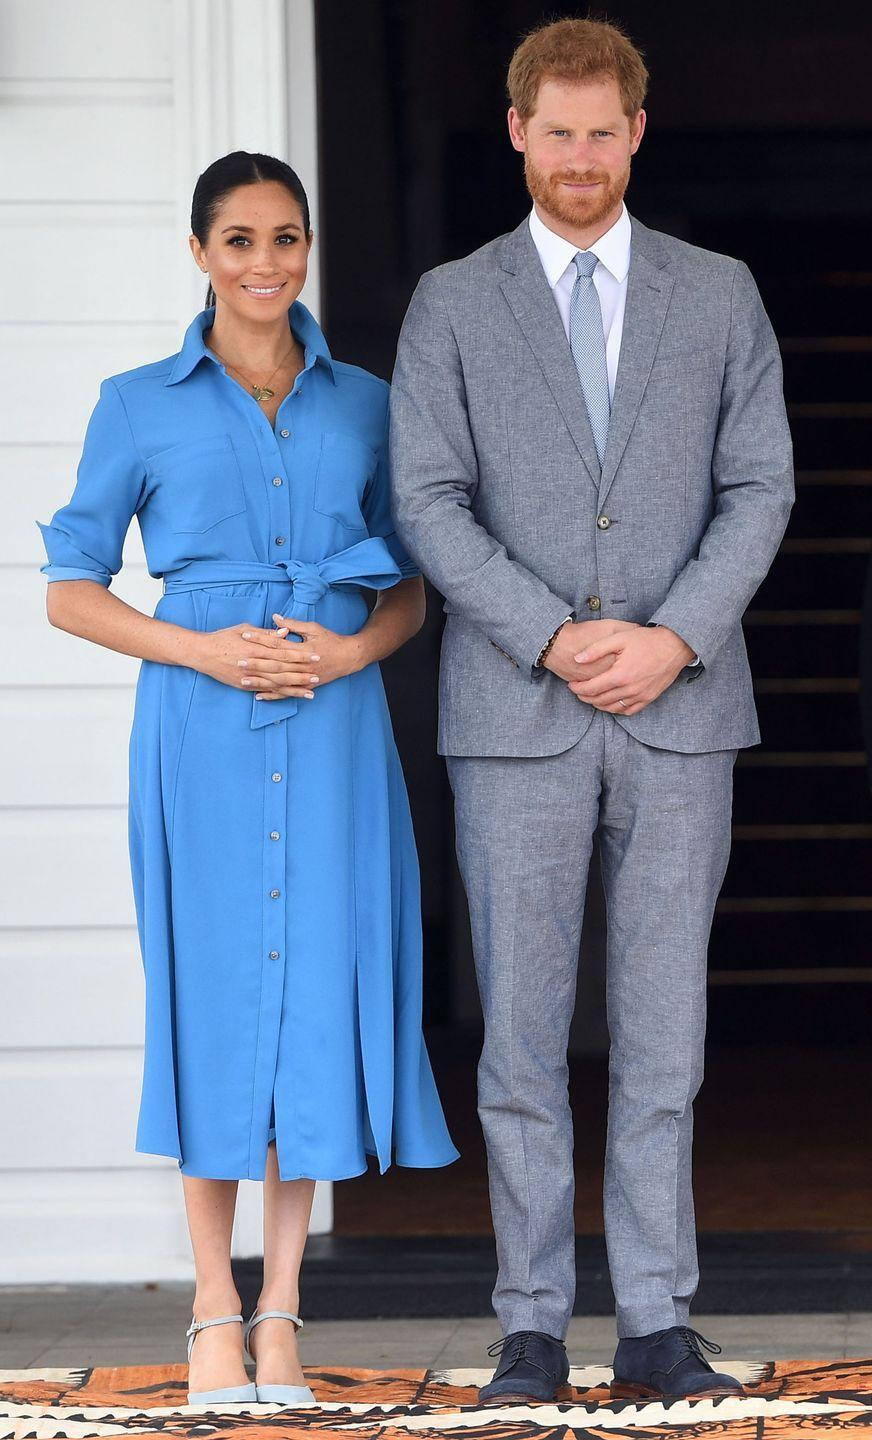 "<p>The Duchess changed for her afternoon engagements into a blue dress by Veronica Beard paired with blue heels by Banana Republic.</p><p><a class=""link rapid-noclick-resp"" href=""https://go.redirectingat.com?id=74968X1596630&url=https%3A%2F%2Fbananarepublic.gap.com%2Fbrowse%2Fproduct.do%3Fvid%3D1%26pid%3D323475012%26searchText%3DMadison%2B12-Hour%2BSide%2BCut-Out%2BPump&sref=https%3A%2F%2Fwww.townandcountrymag.com%2Fstyle%2Ffashion-trends%2Fg3272%2Fmeghan-markle-preppy-style%2F"" rel=""nofollow noopener"" target=""_blank"" data-ylk=""slk:SHOP NOW"">SHOP NOW</a> <em>Madison 12-Hour Side Cut-Out Pump, $89.50</em></p>"